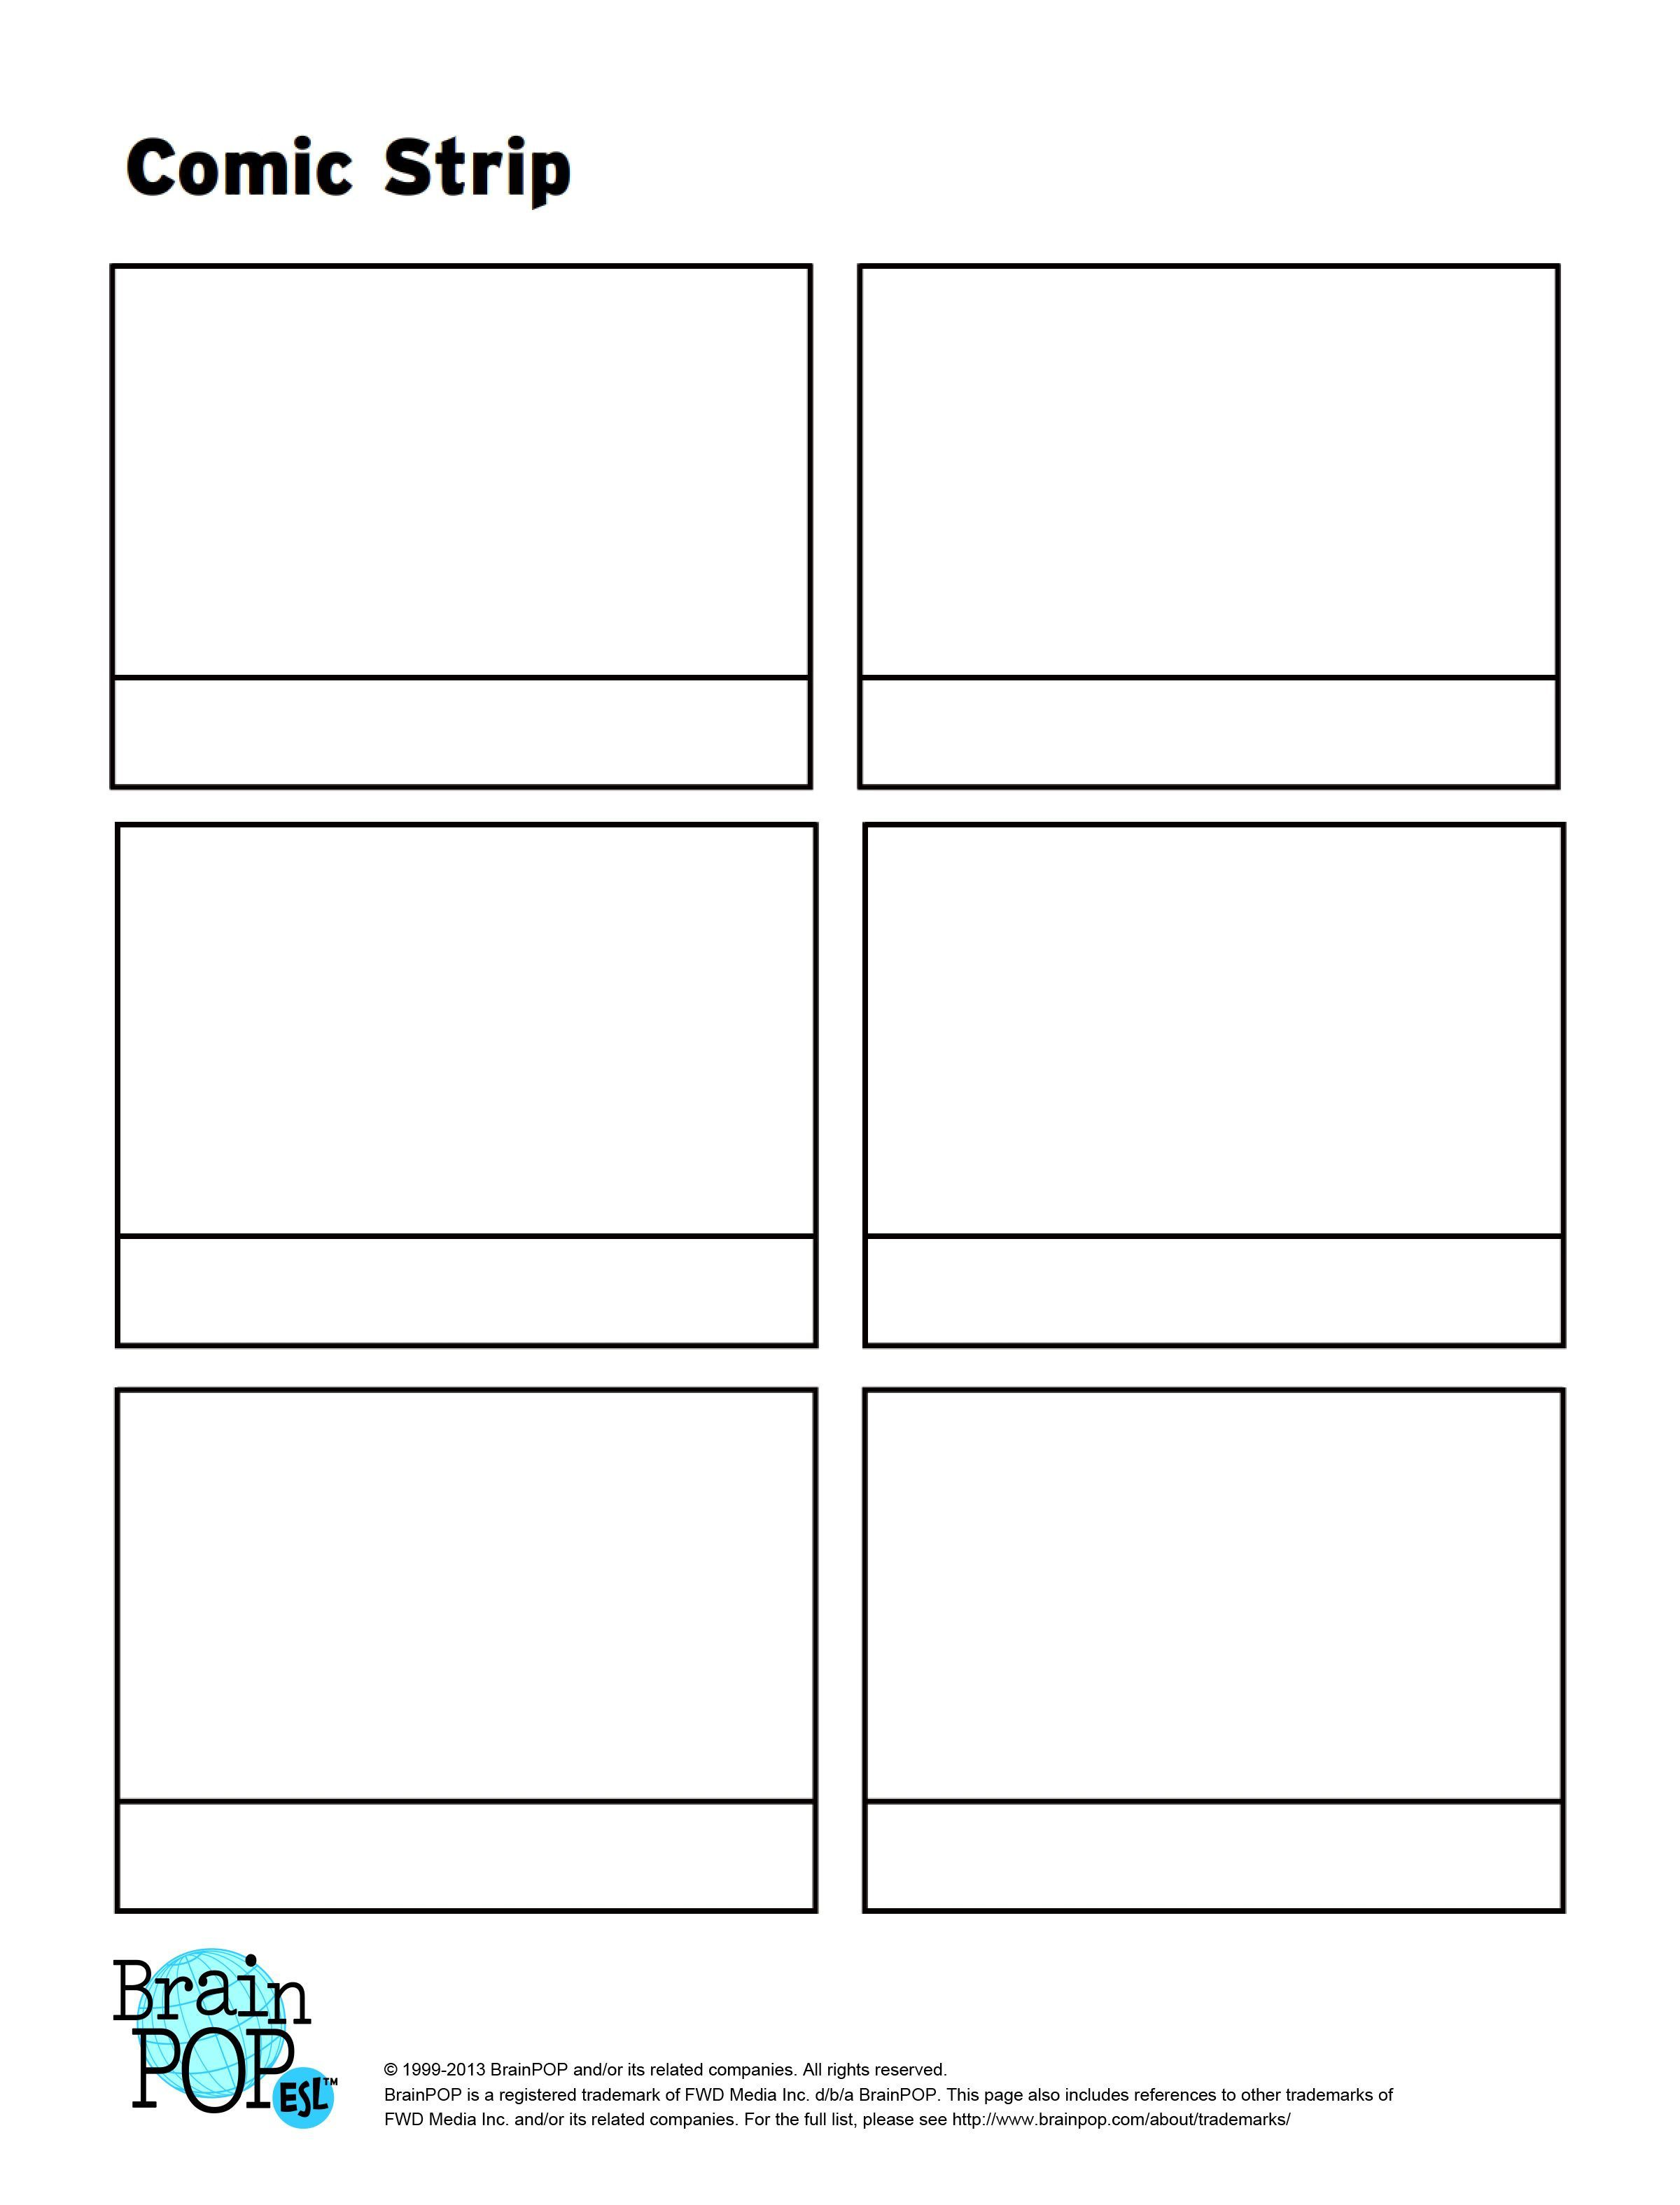 000 Remarkable Free Comic Strip Template Word Idea Full